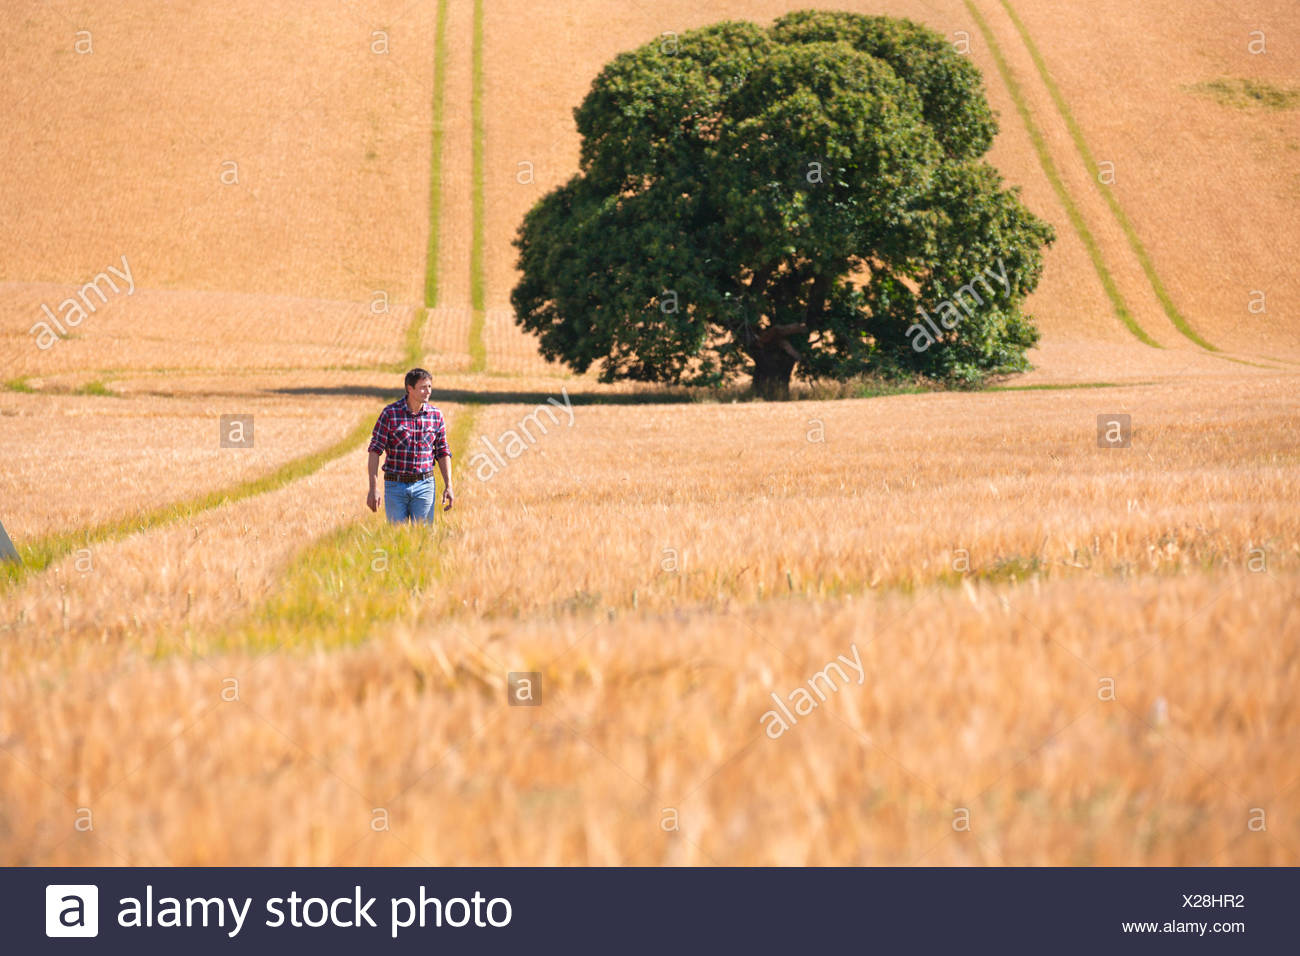 Farmer walking in sunny rural barley crop field in summer - Stock Image